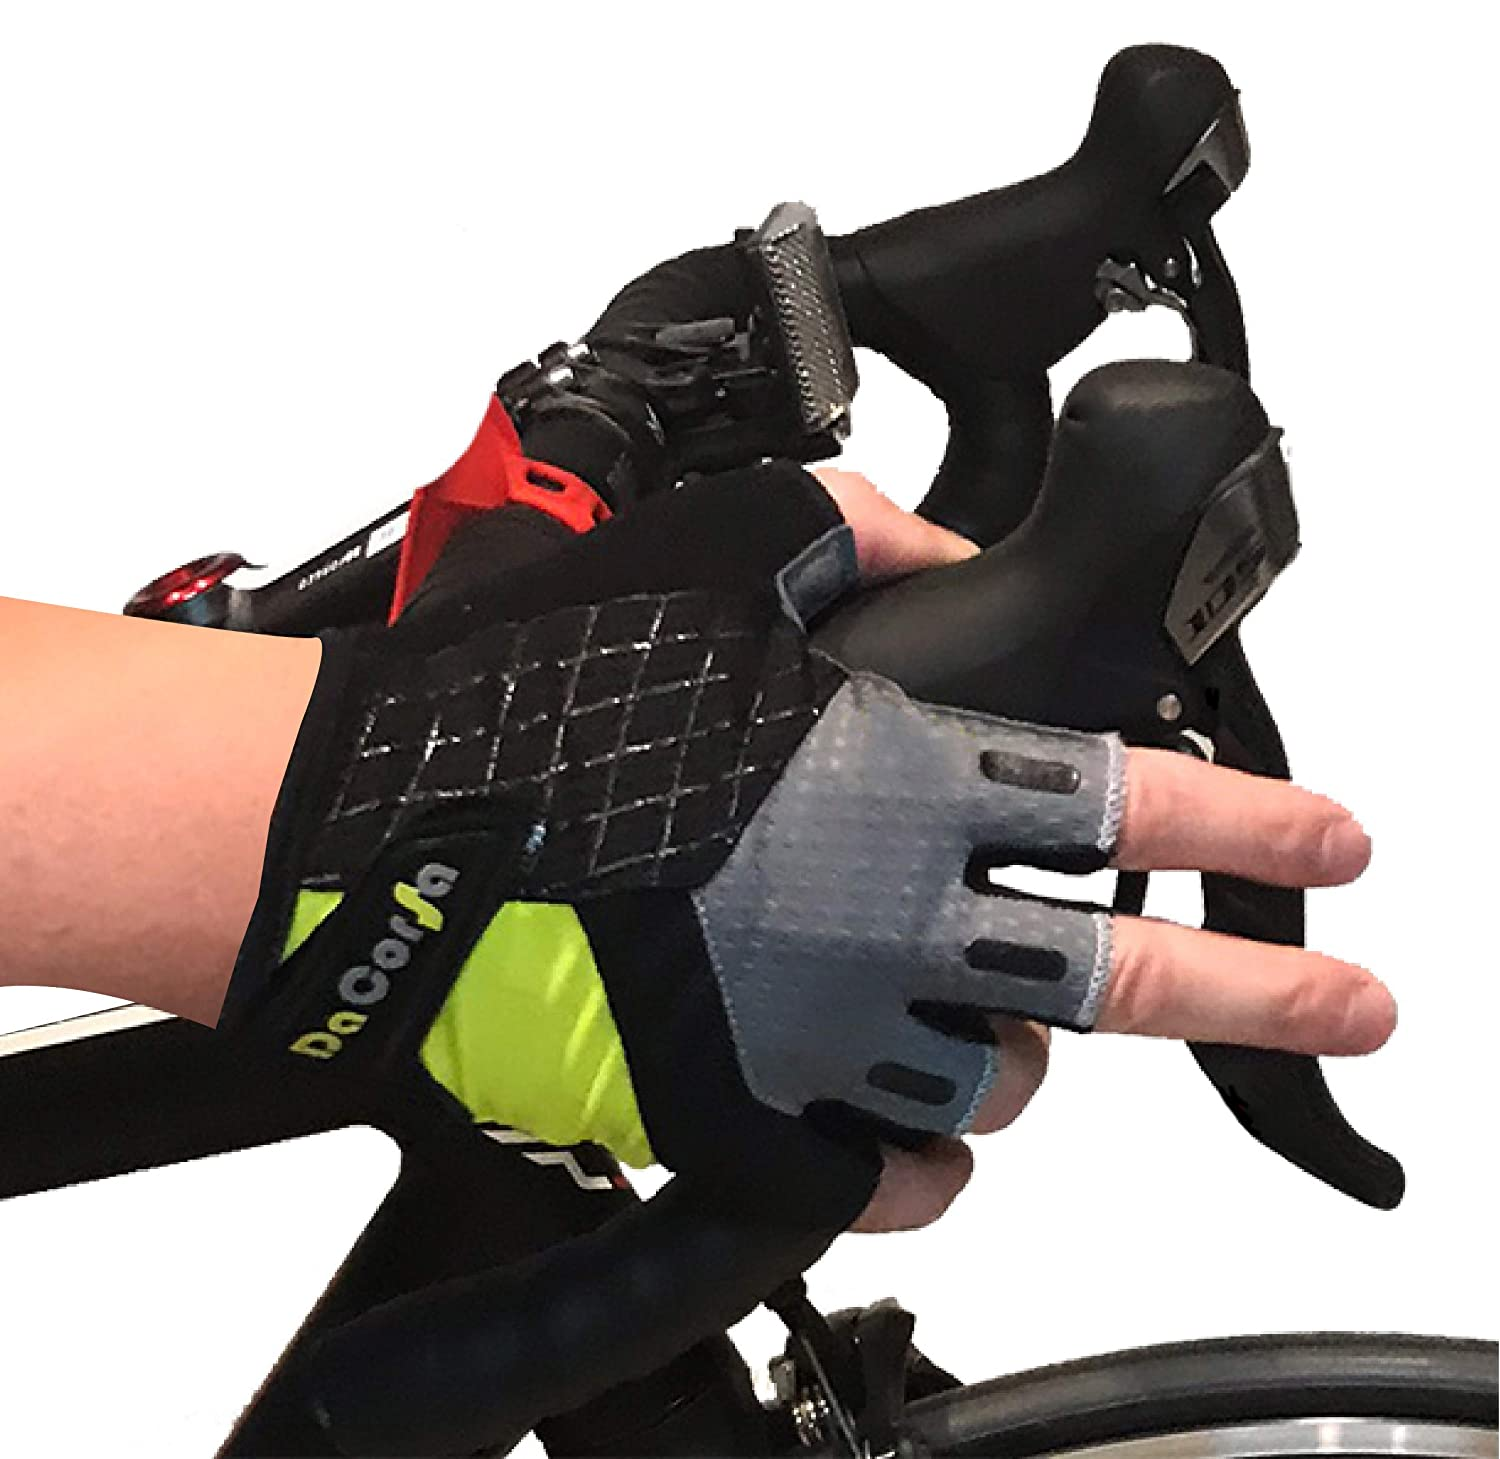 Sport Gloves High Performance Shock Absorption Da Corsa Cycling Gloves Grip and Control Half Finger Glove Design with Easy Off Loops Bike Gloves for Men and Women